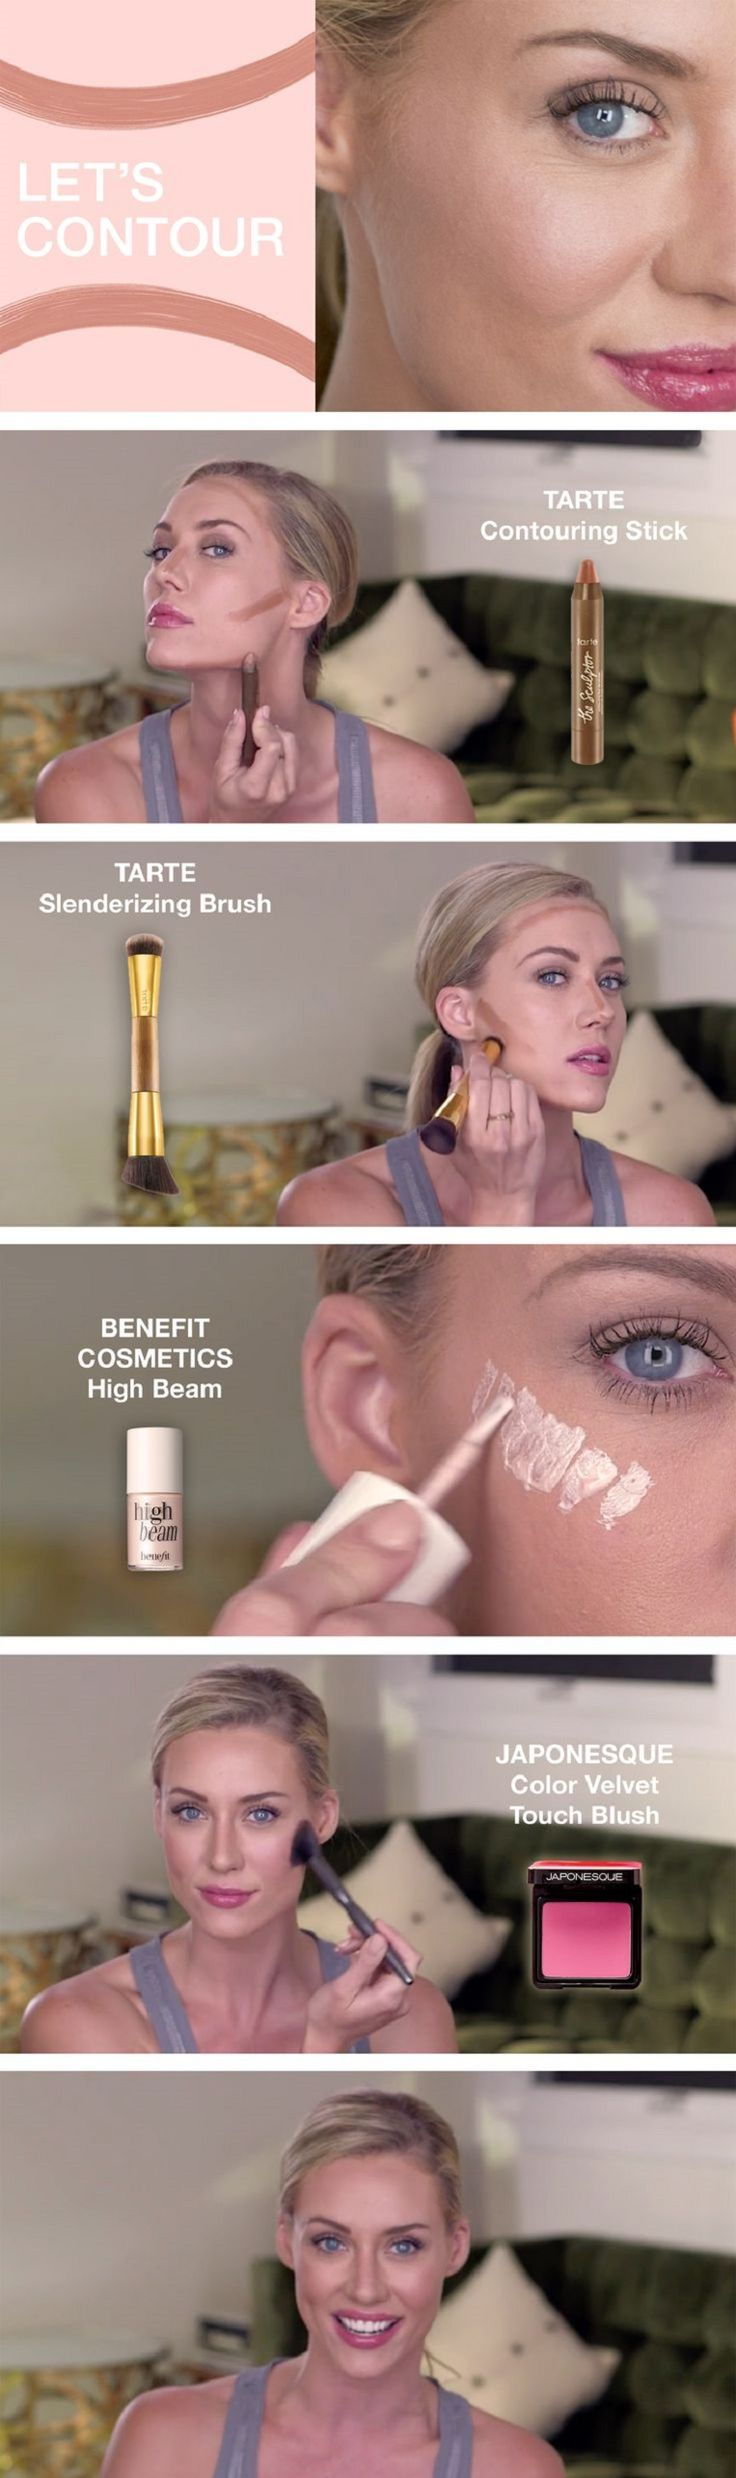 Natural Everyday Look, Using Contouring and Highlighting Techniques